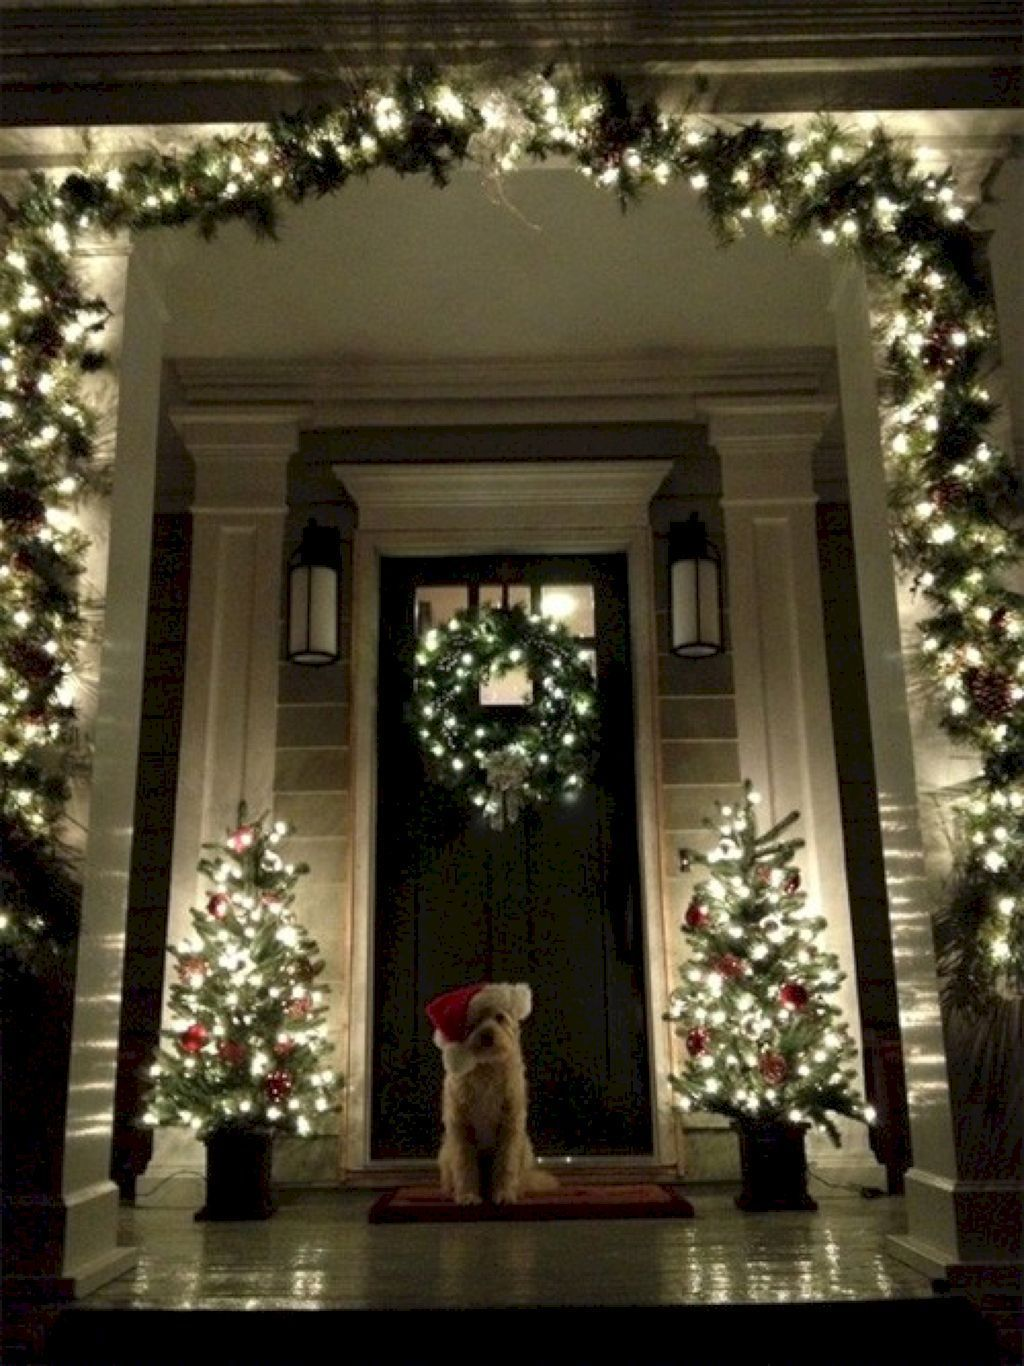 45 Awesome Christmas Front Porch Decor Ideas & 45 Awesome Christmas Front Porch Decor Ideas | Christmas decor and ...